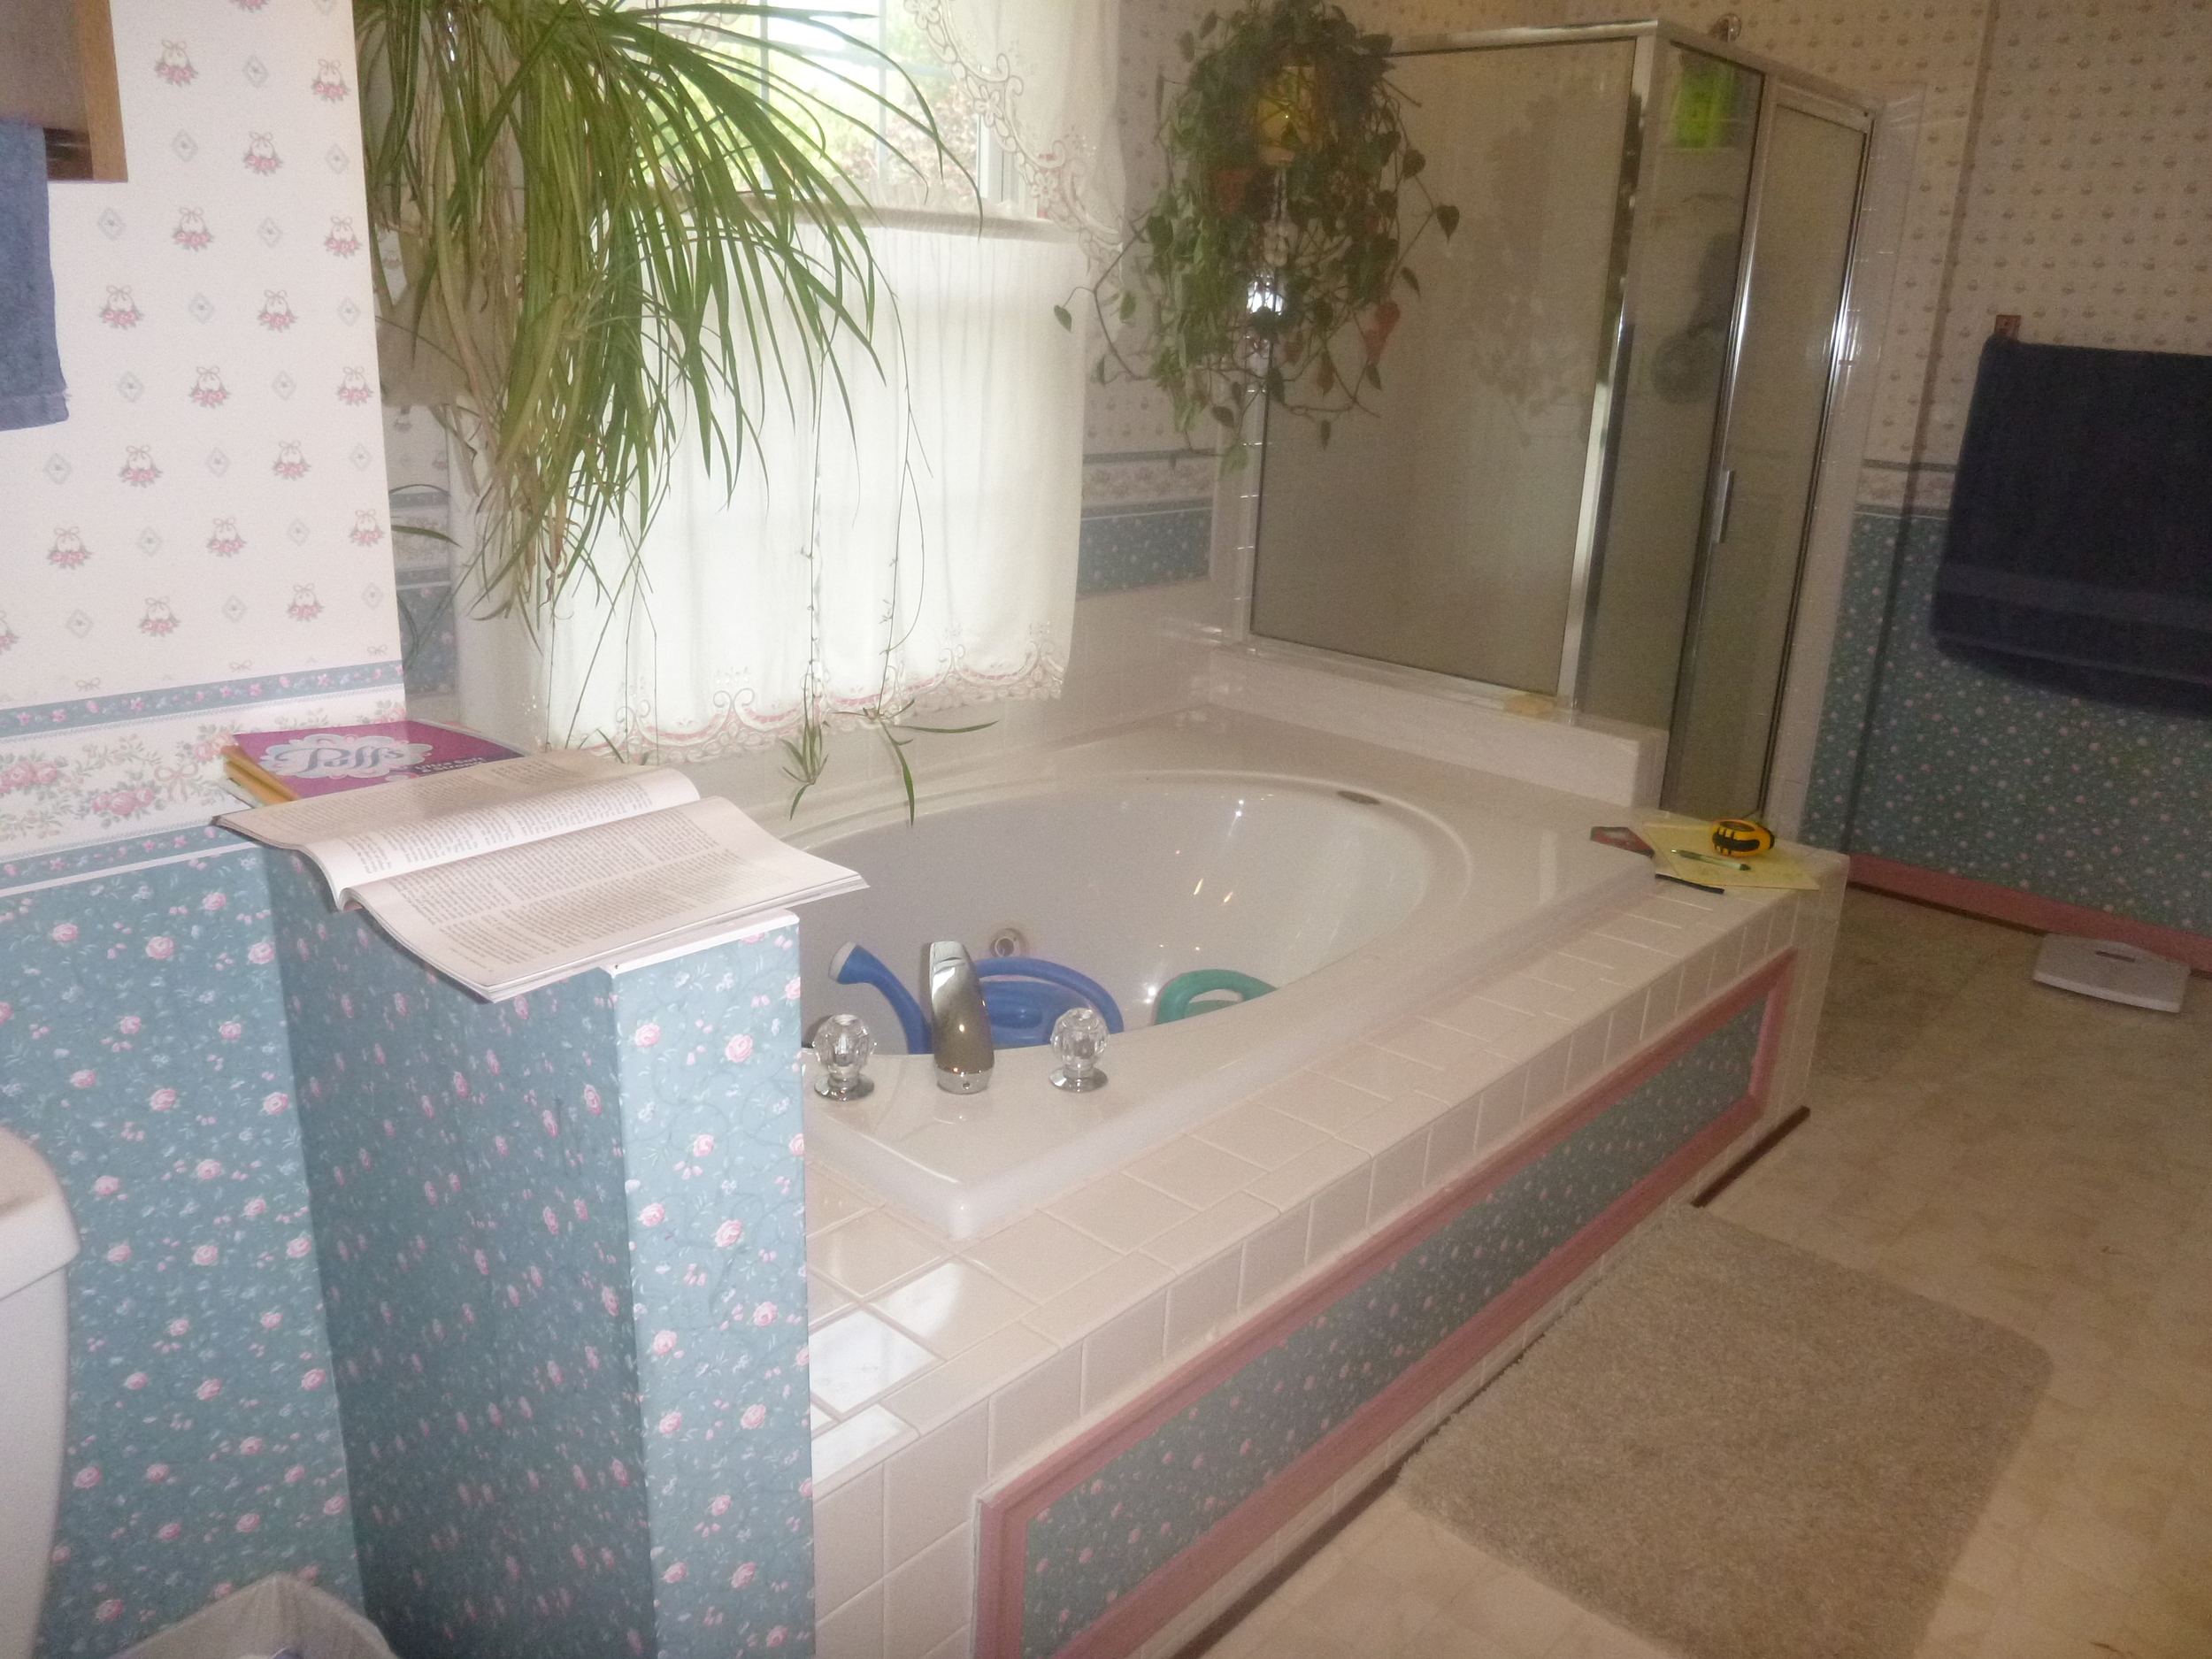 Before: the master bath tub was oversized and underused, while the constantly-used shower was too small.